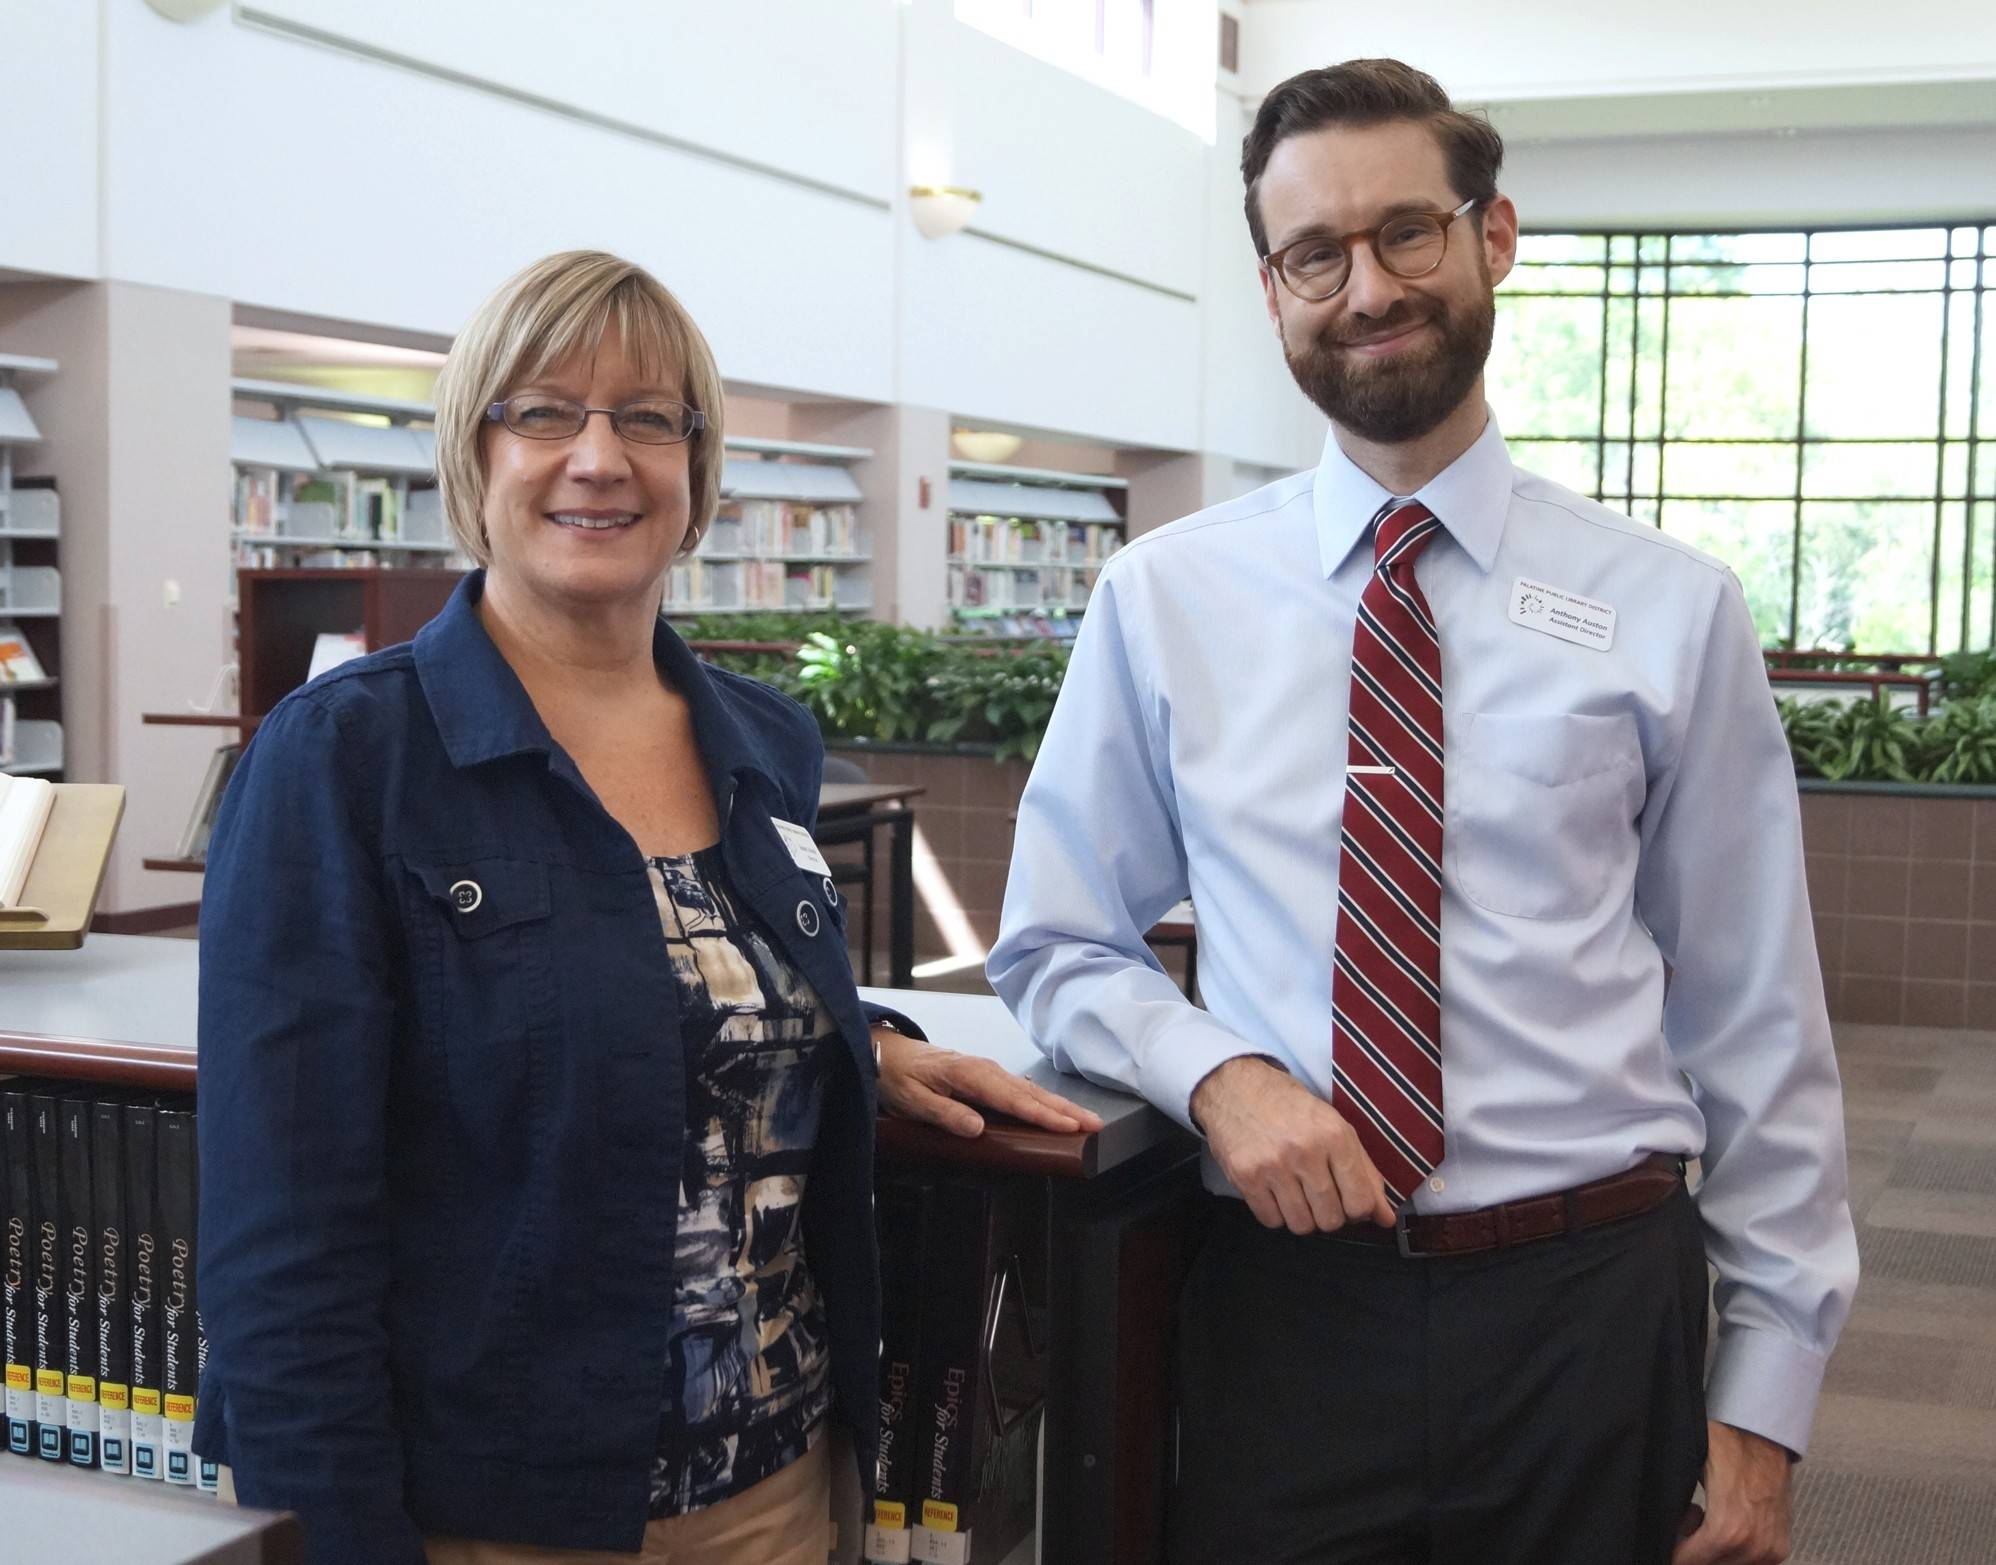 Anthony Auston, right, has been named the new director of the Palatine Public Library, taking over for Susan Strunk.